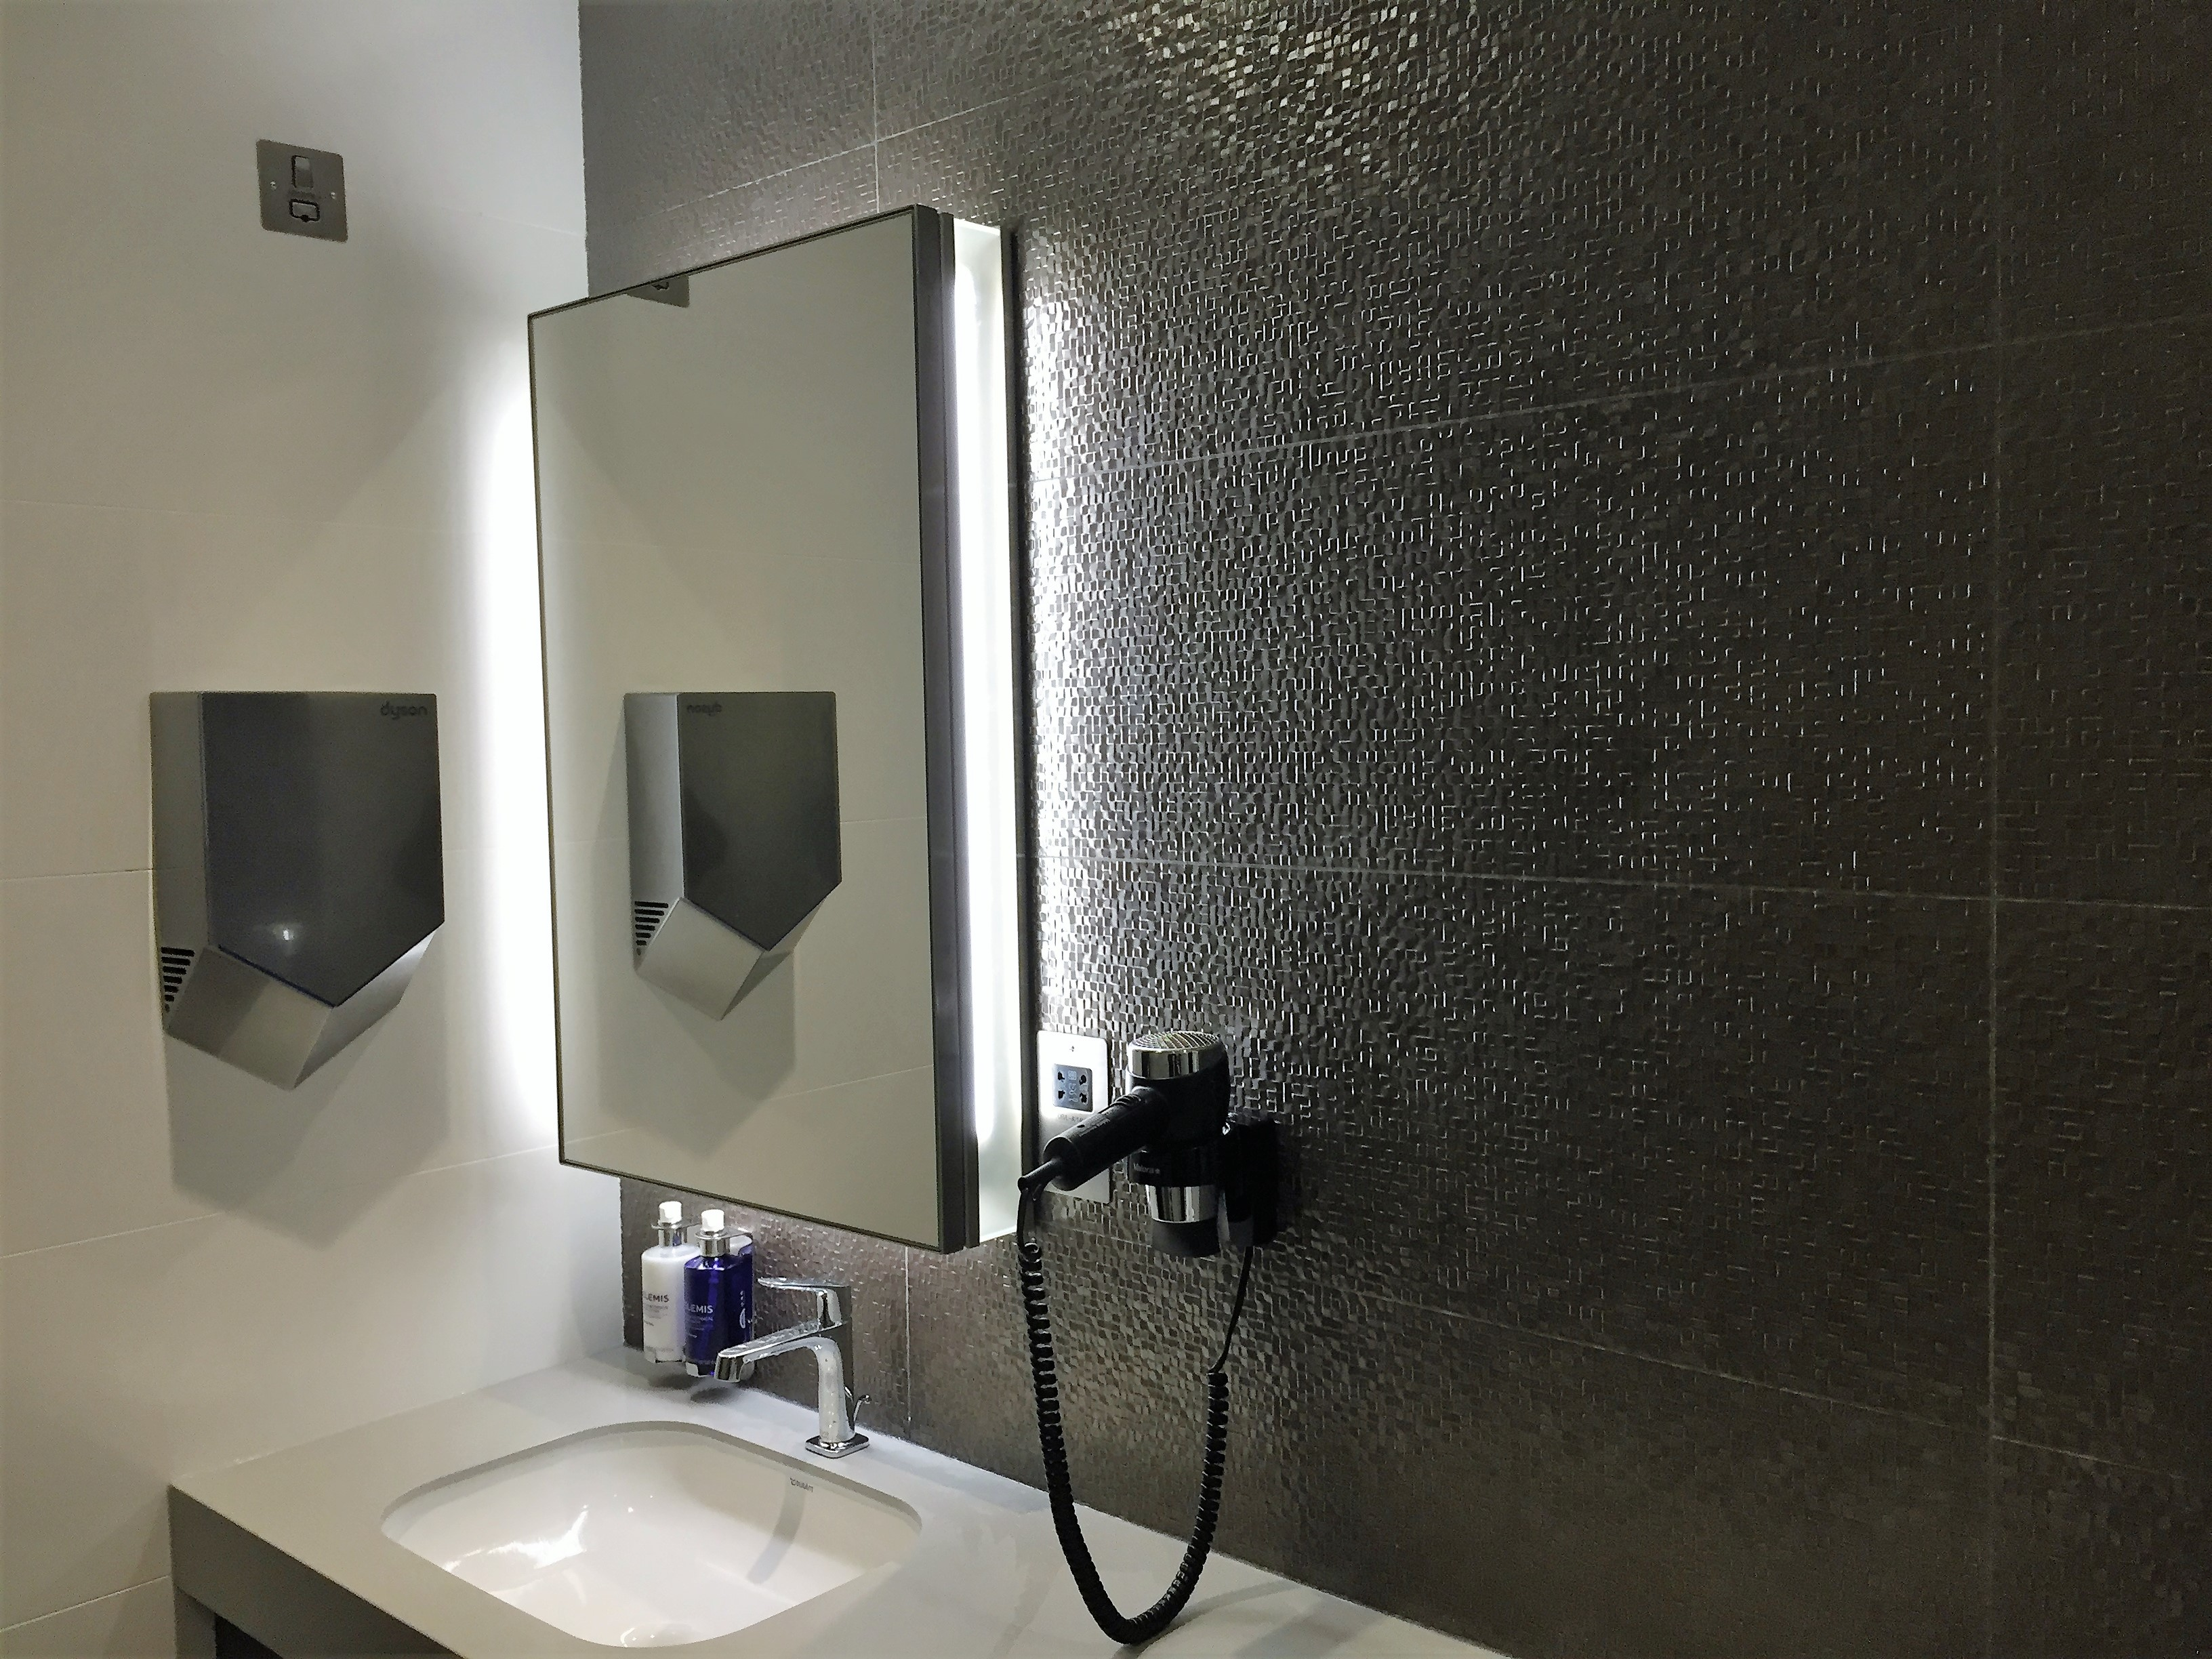 BA new club lounge gatwick south shower room